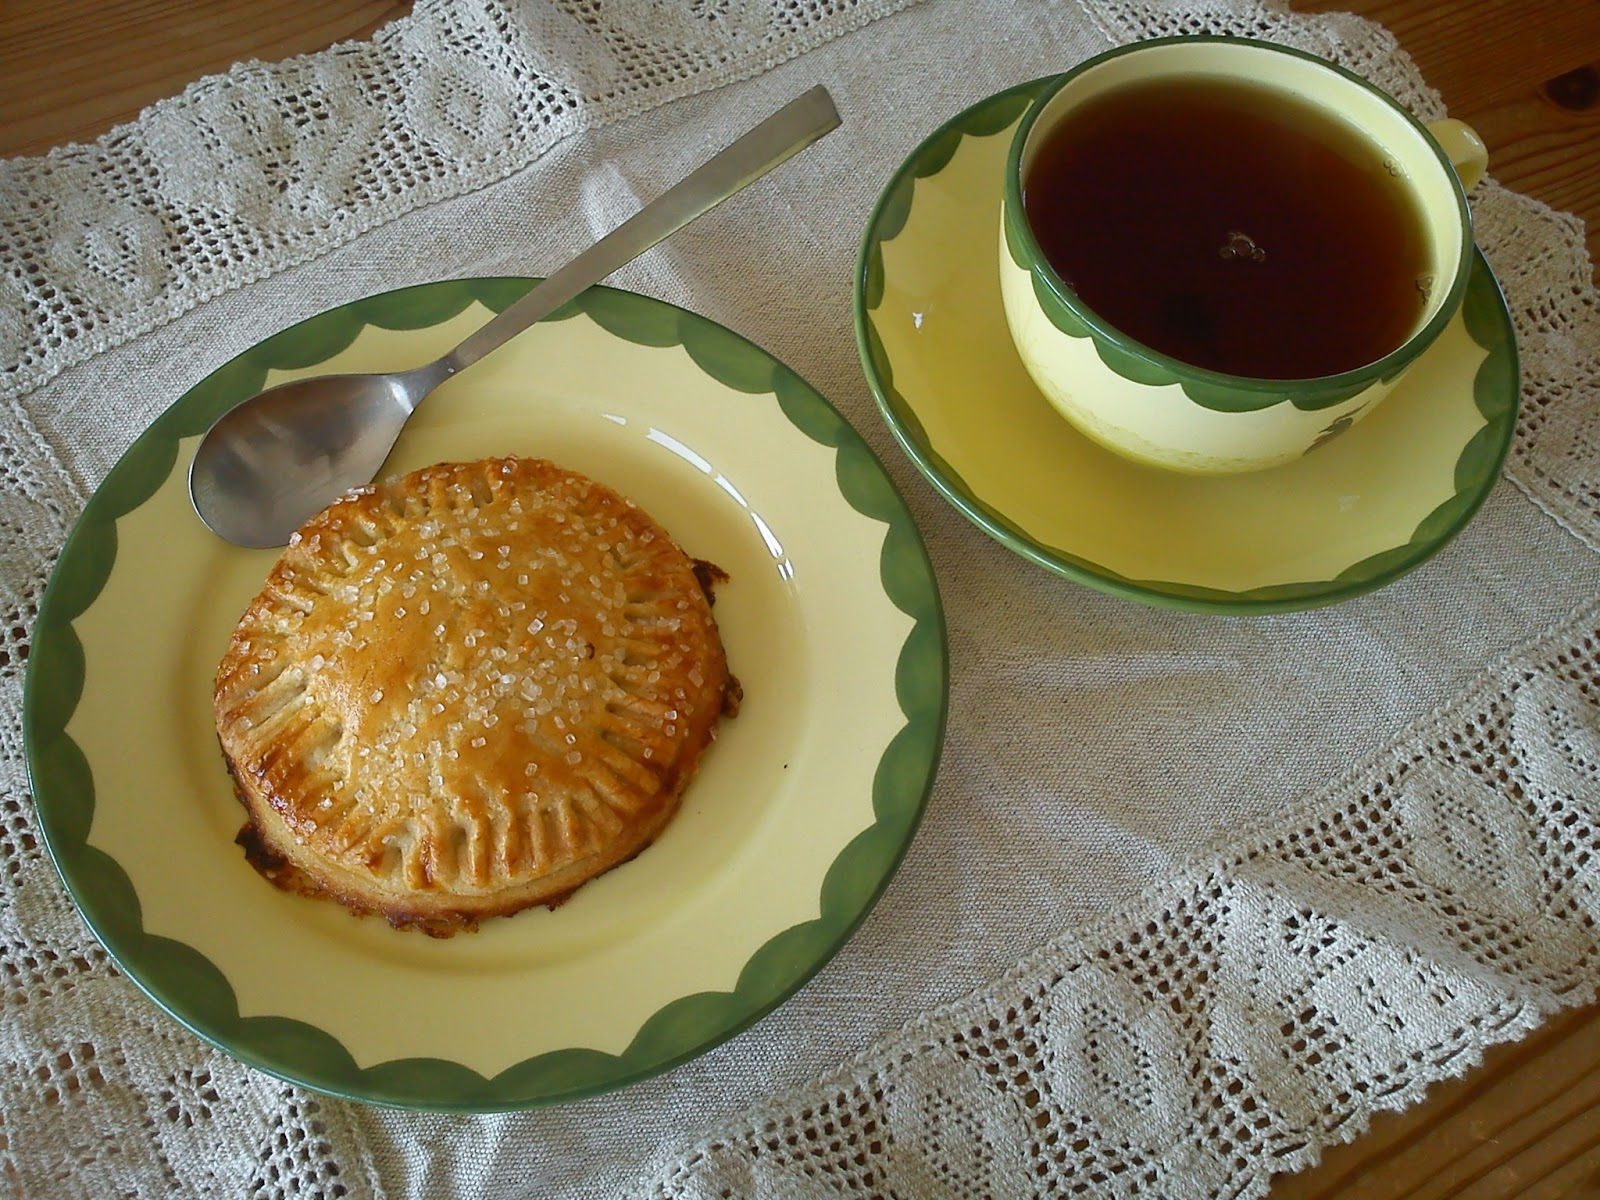 Kitchen of Kiki: Tartes aux Pommes for Tea Time Treat ...